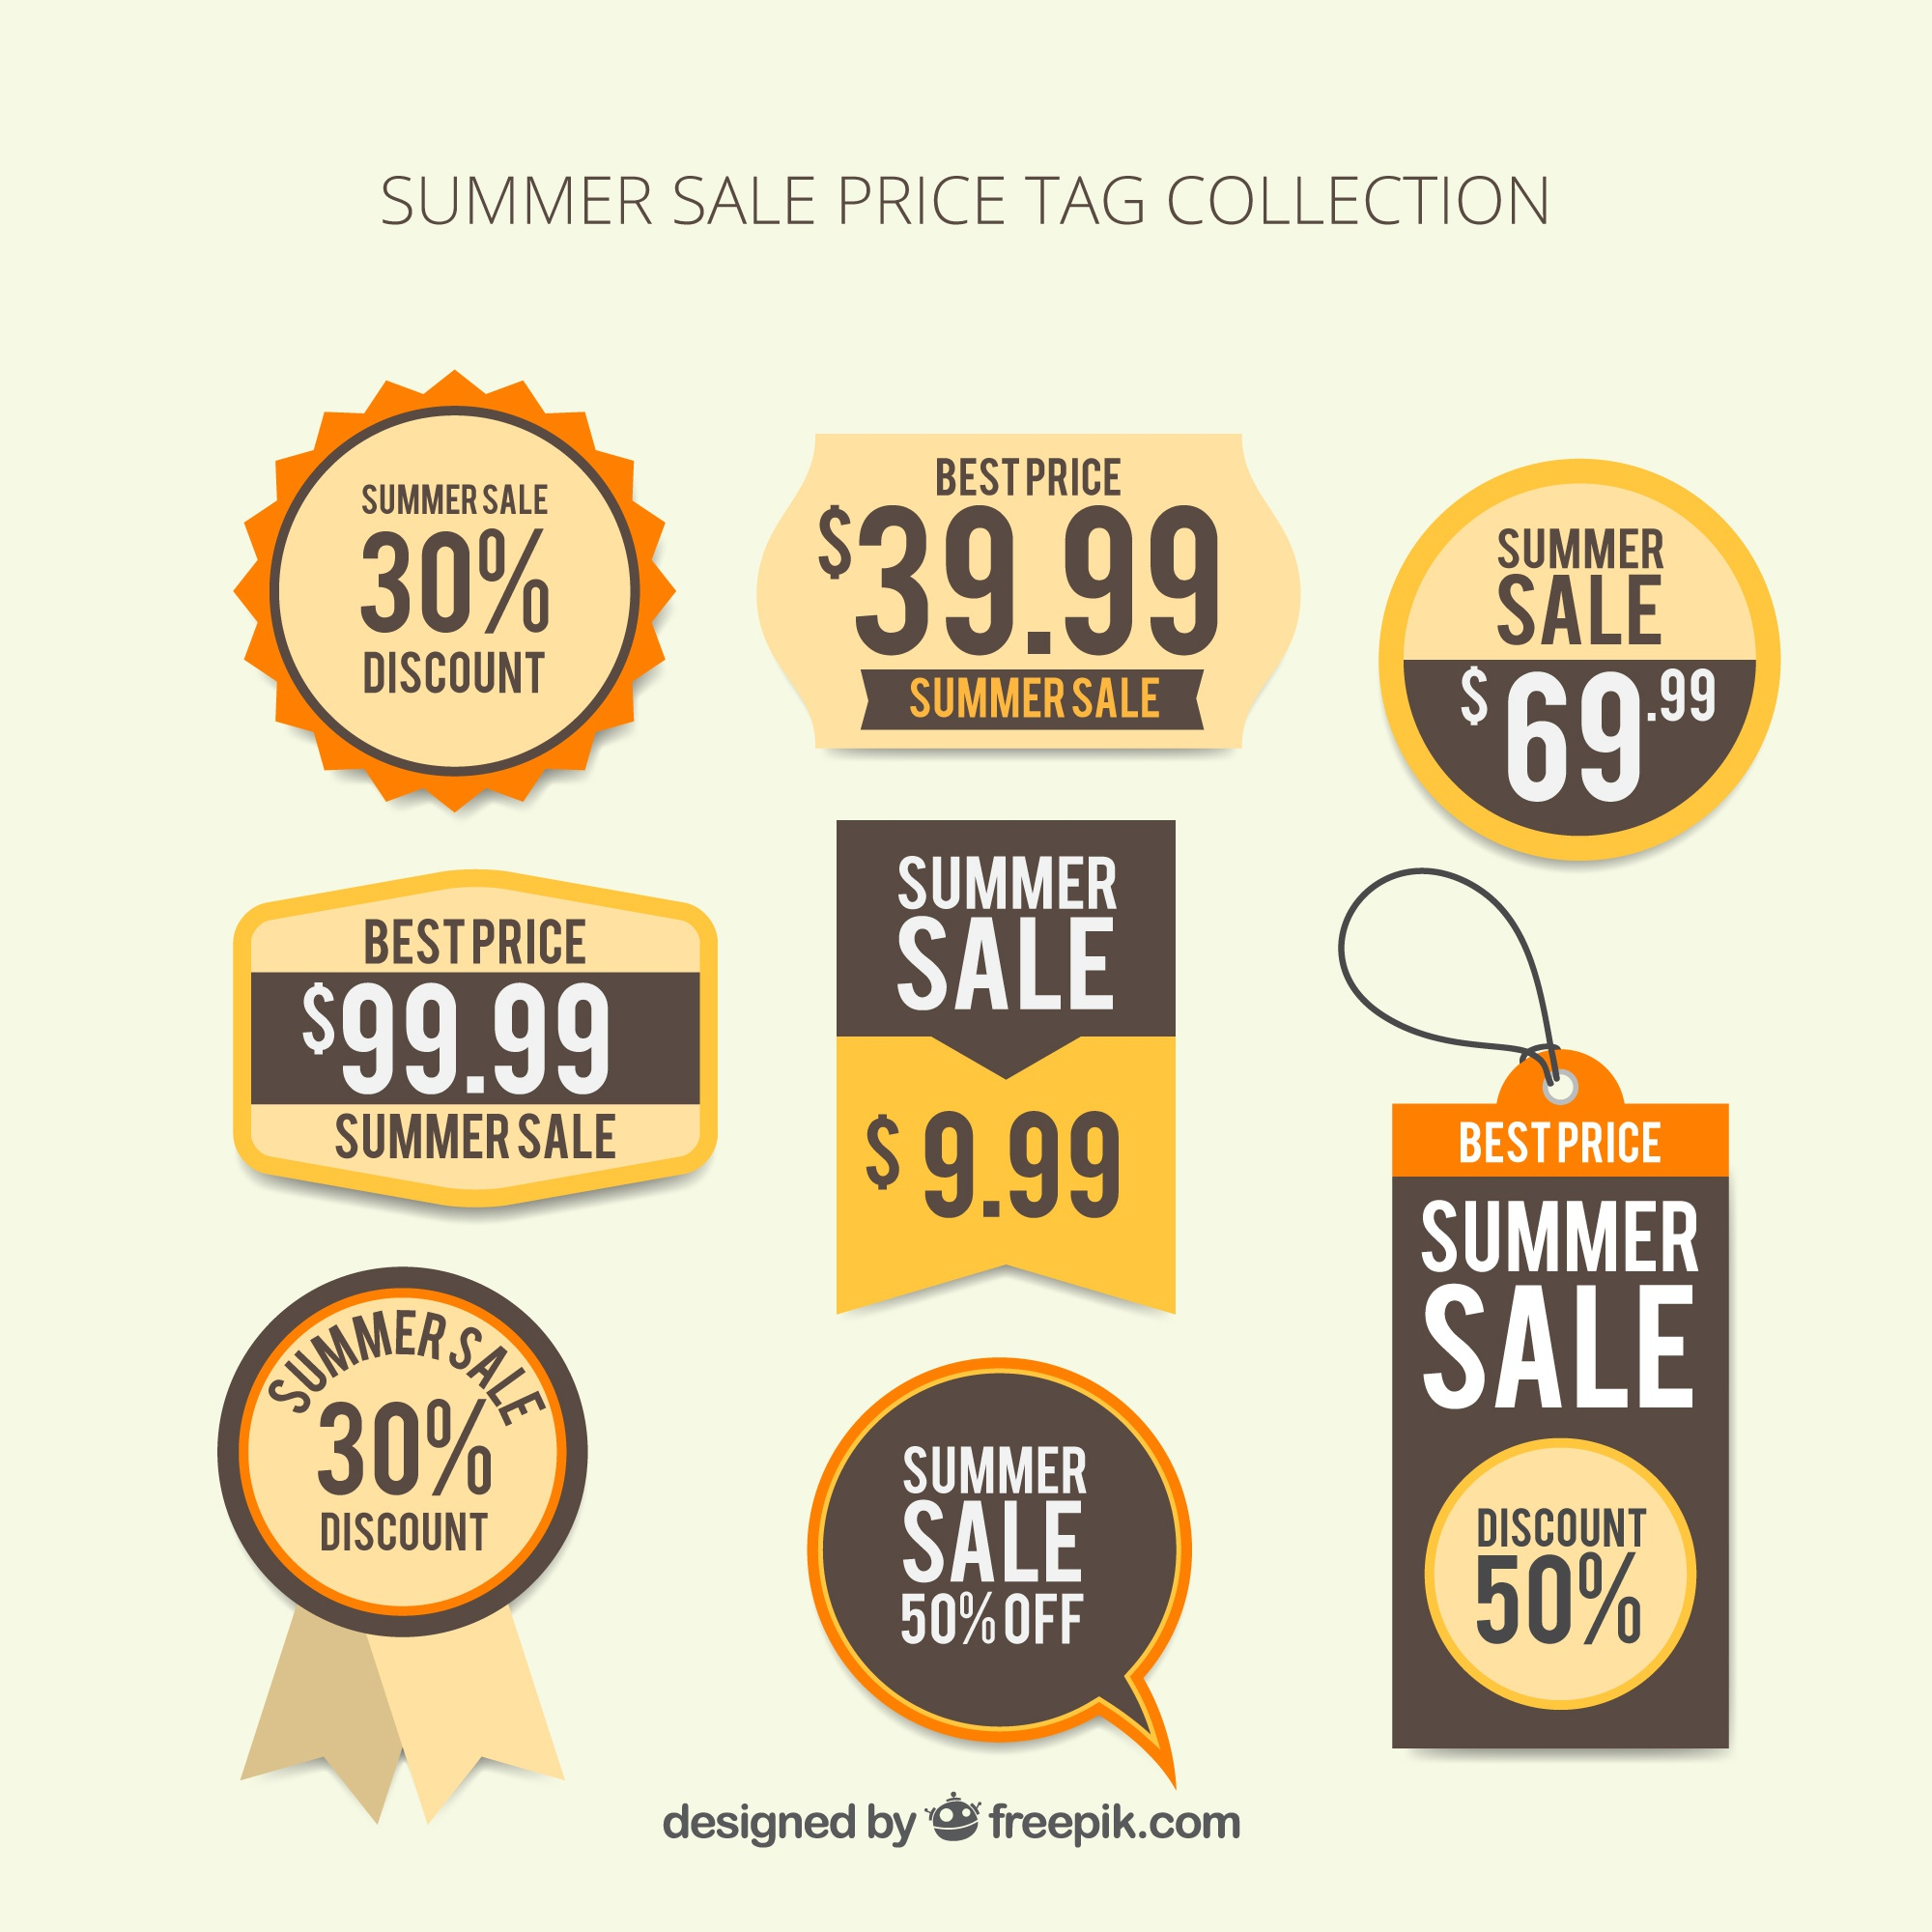 Summer sale price tag collection